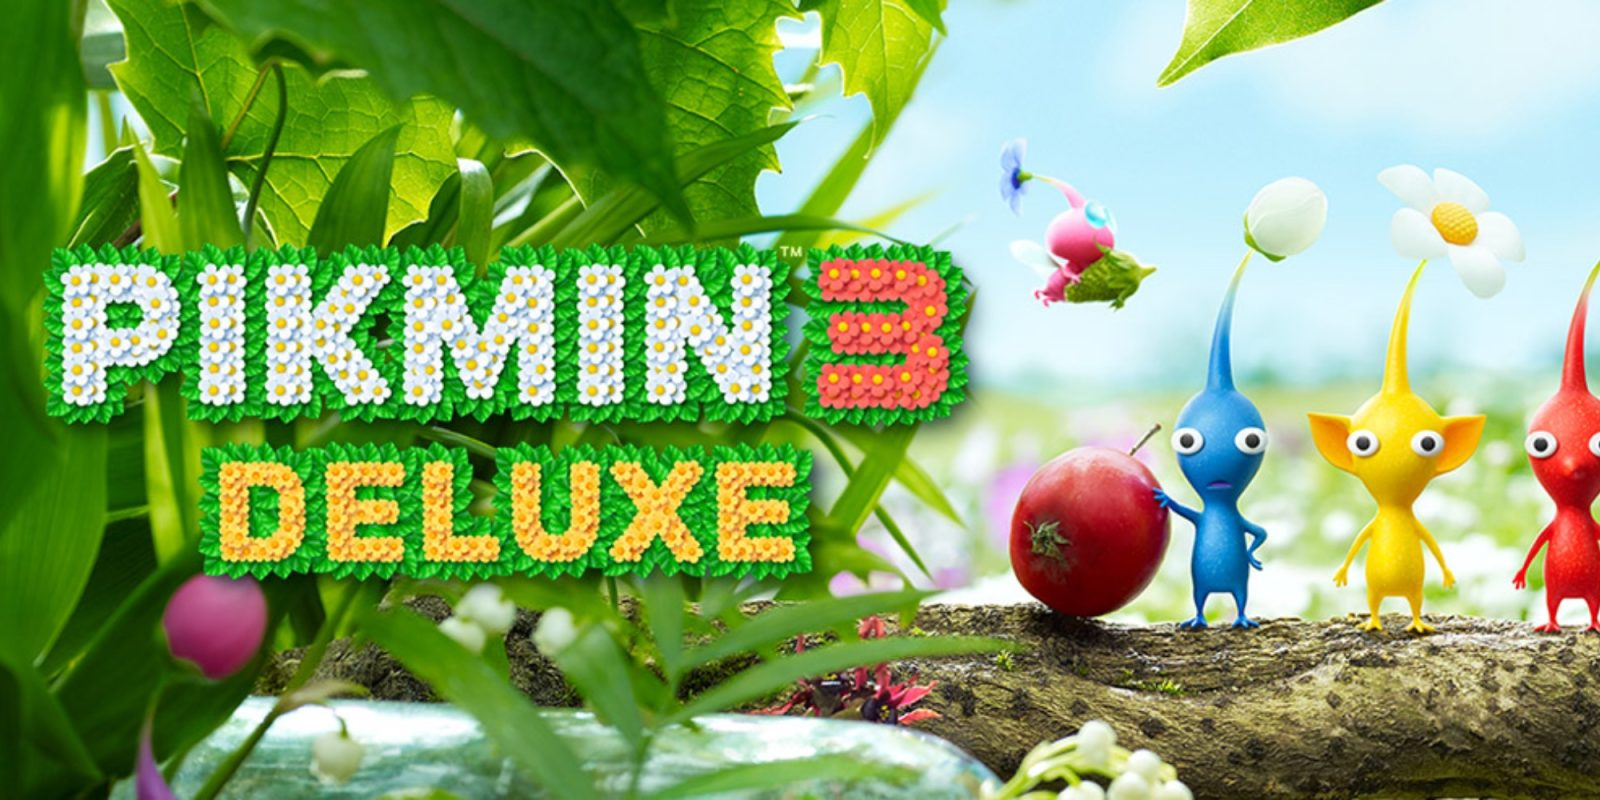 Pikmin 3 Deluxe Lands On Nintendo Switch This Fall 9to5toys